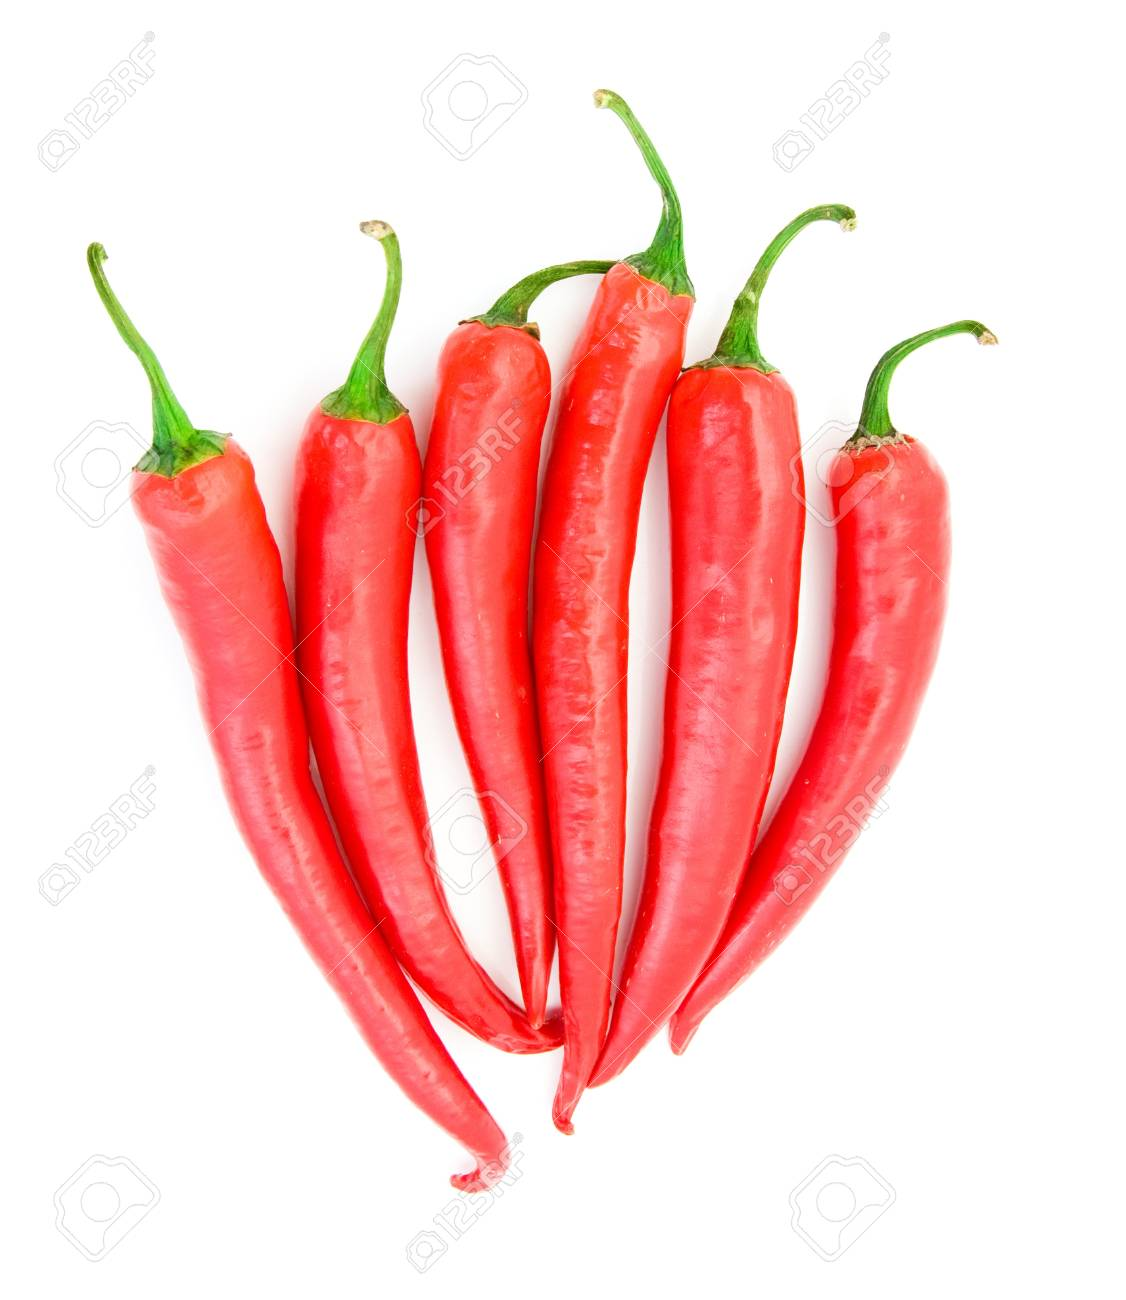 Chili pepper isolated on white background Stock Photo - 8831040